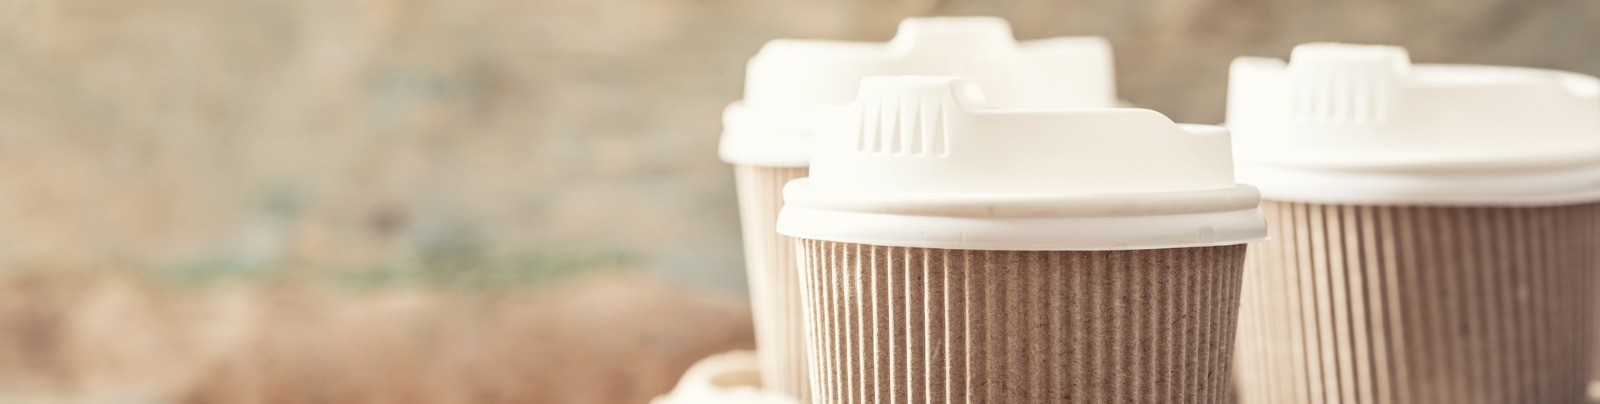 Takeaway cups recycling process